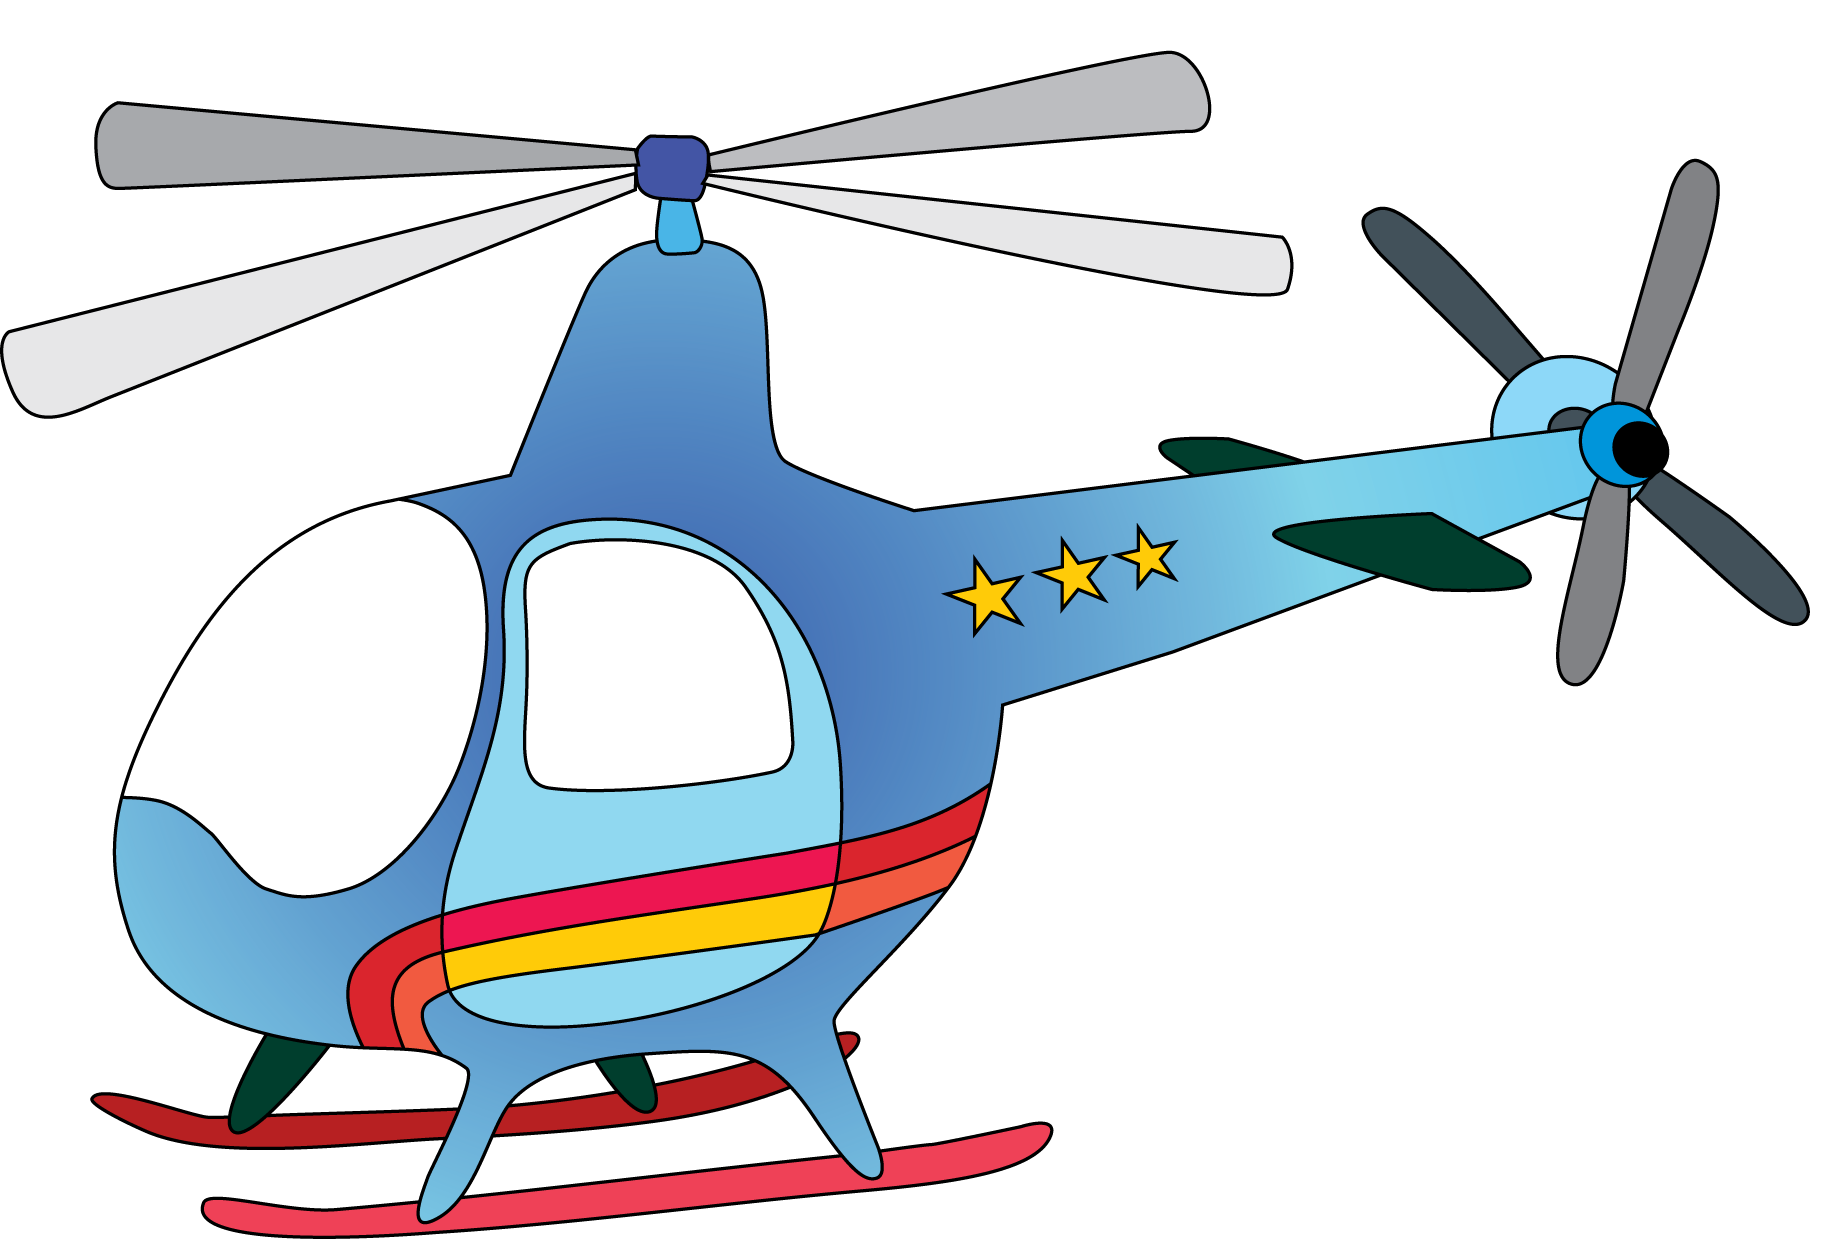 1845x1239 Cute Airplane Clip Art Have About Files Nov Cachedhelicopter